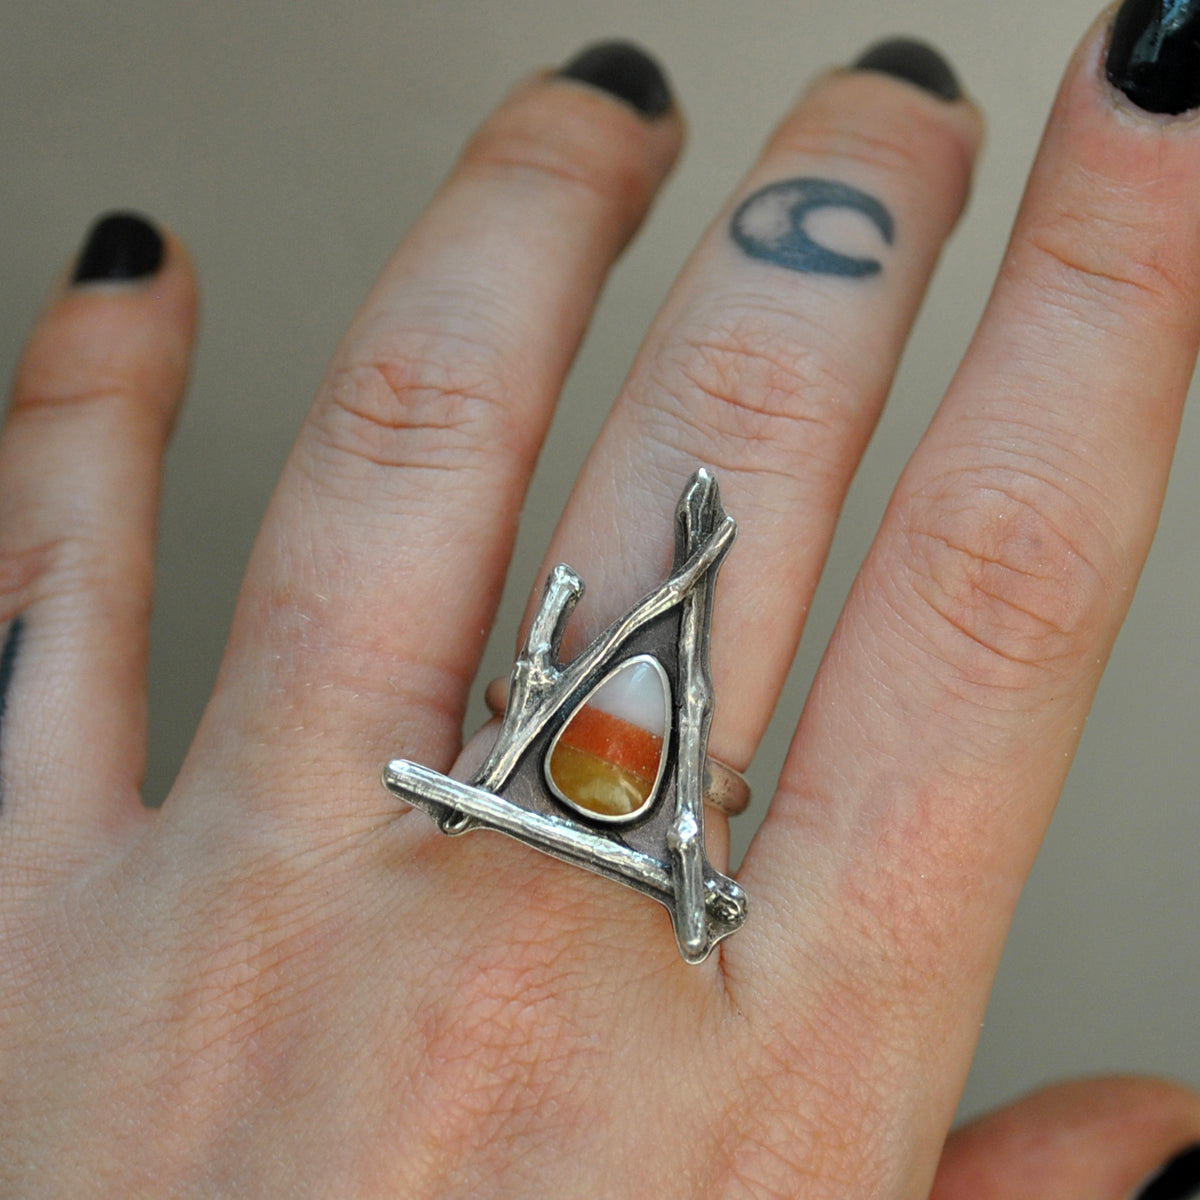 Size 7.75, October House, Candy Corn Ring, Sterling and Fine Silver